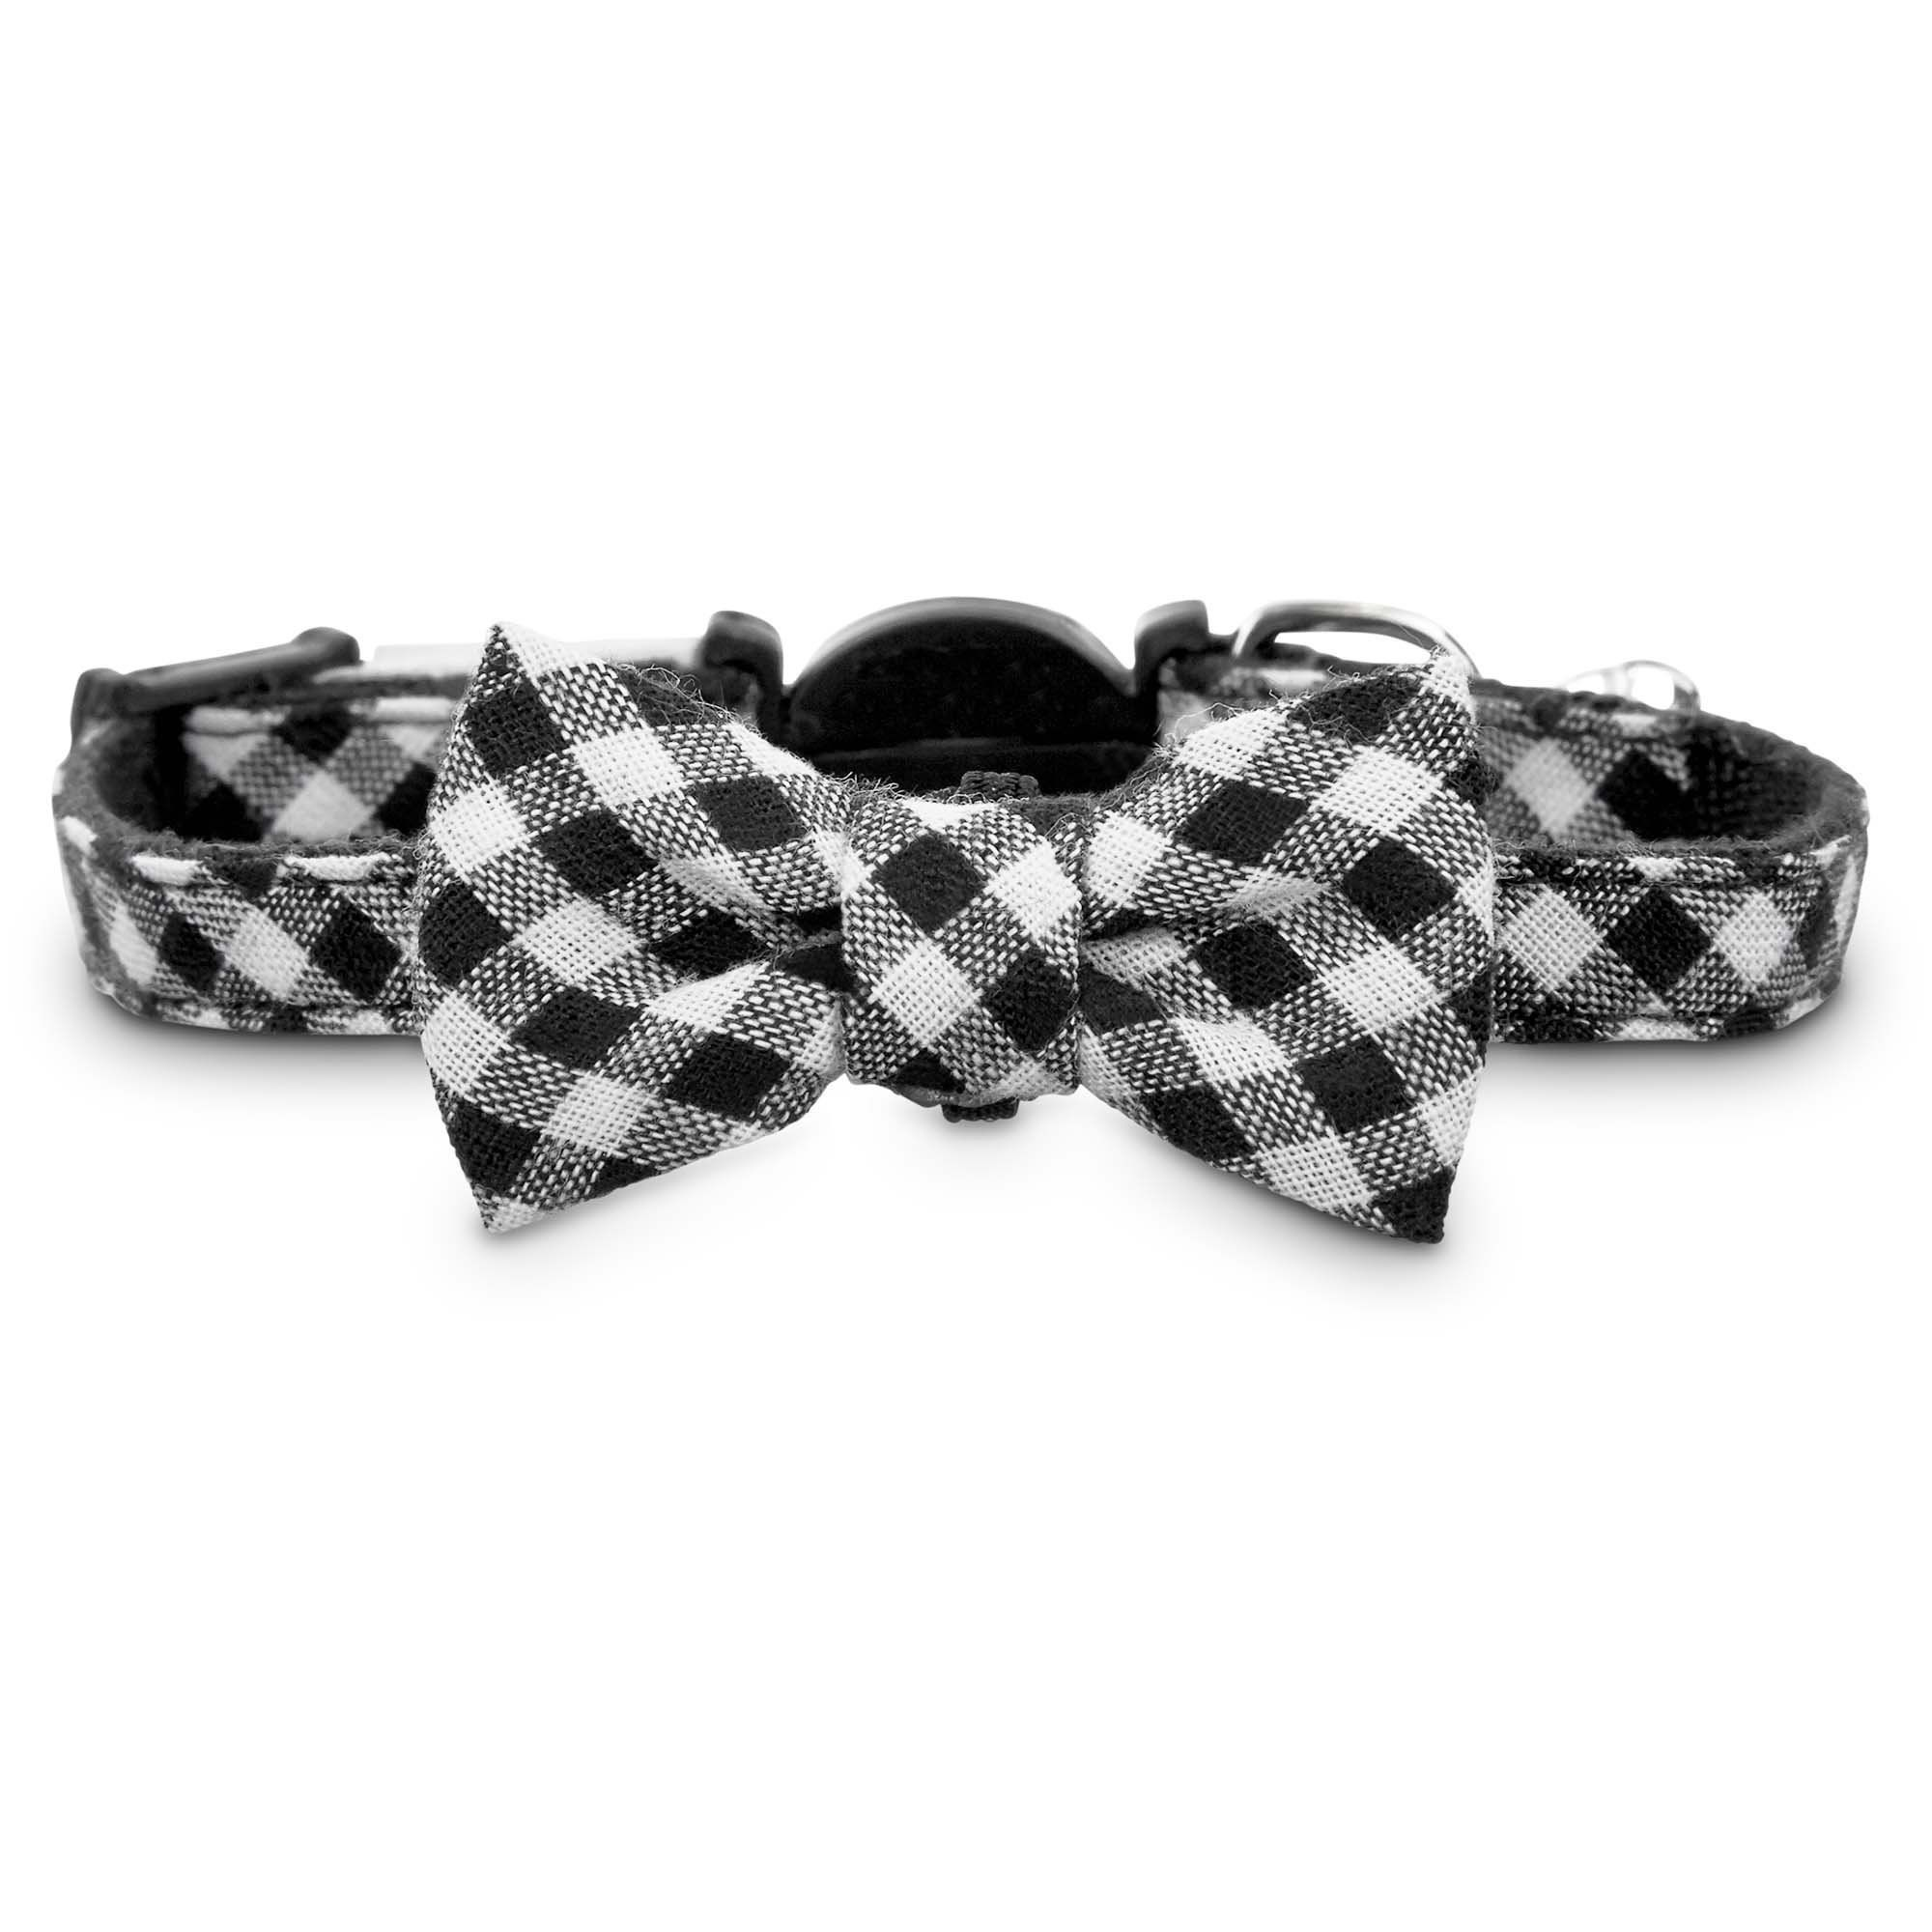 Bond And Co Black Gingham Bow Tie Kitten Collar Xsmall Xxlarge One Size Fits All To Watch Additionally For Thi Kitten Collars Cat Collars Kittens